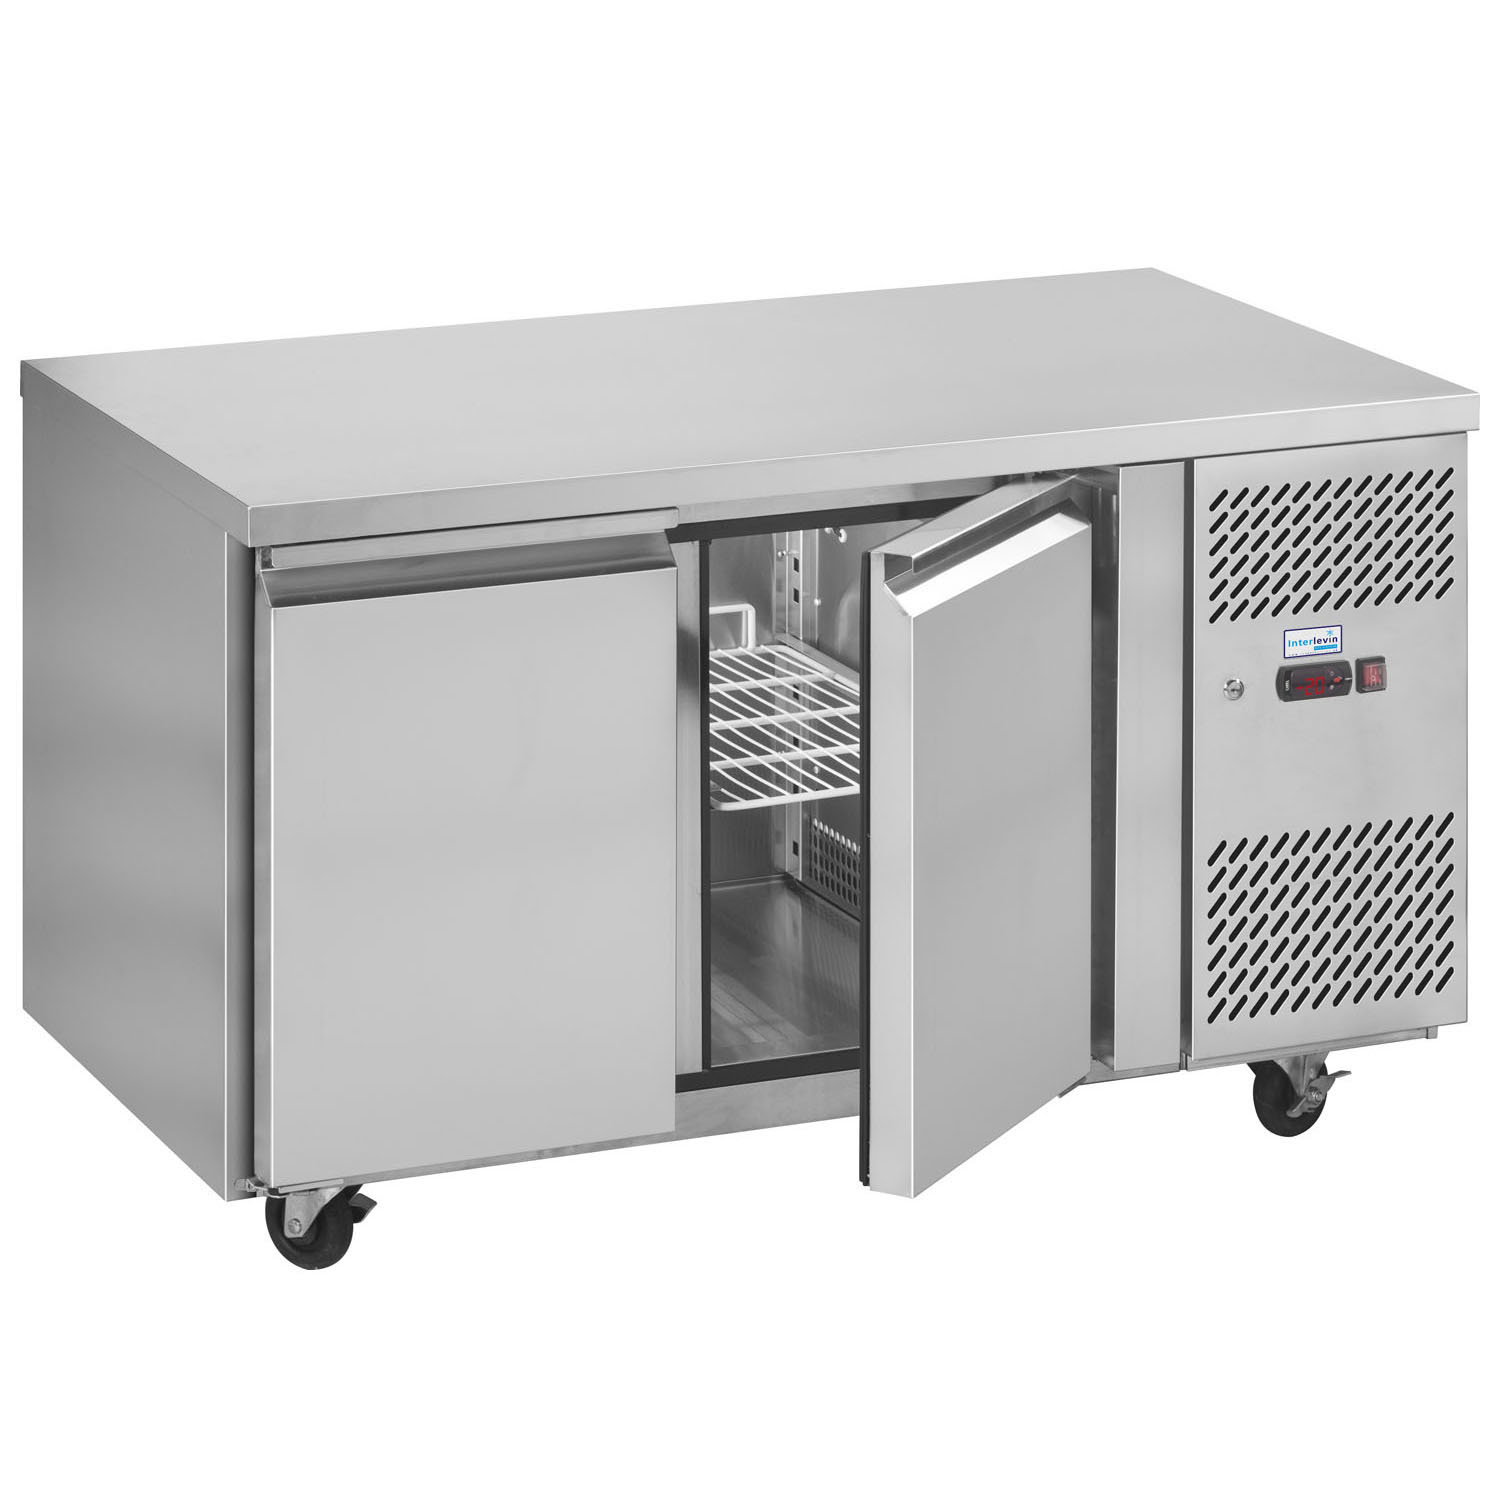 An image of Interlevin PH20F Freezer Prep Counter